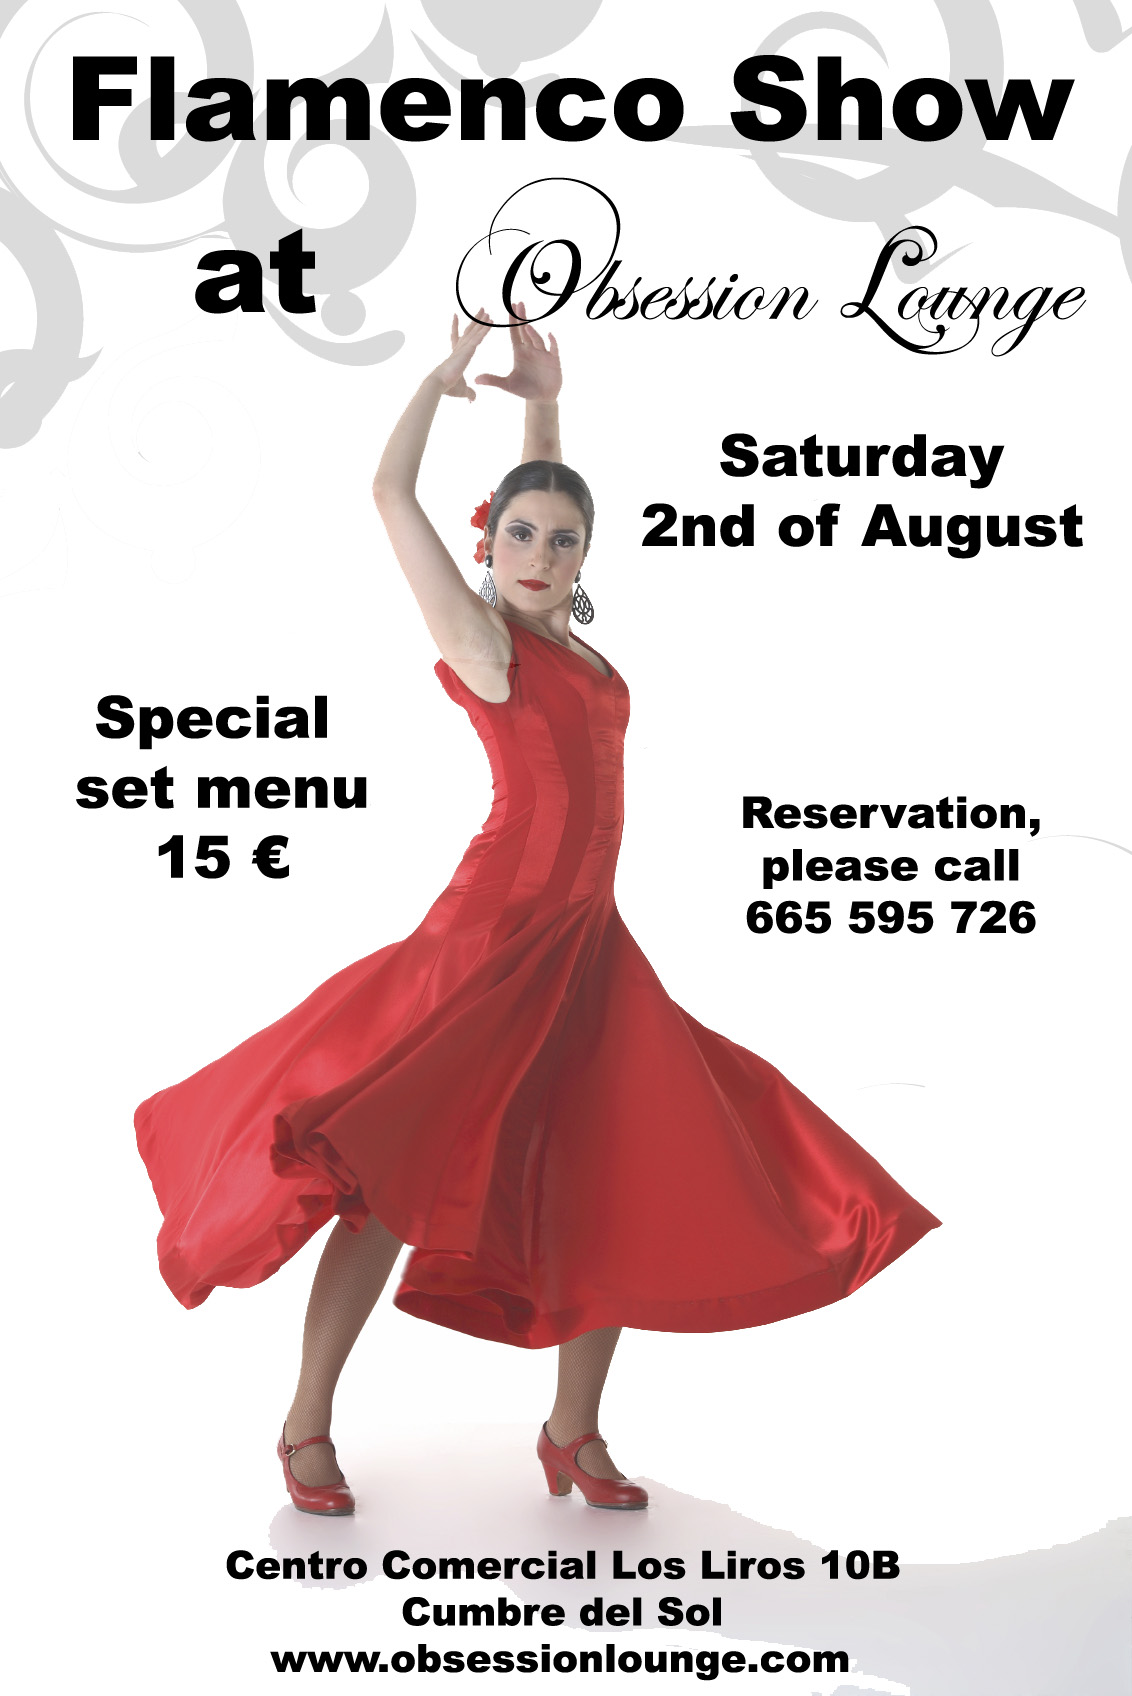 Poster of the Flamenco Night organized by Obsession Lounge